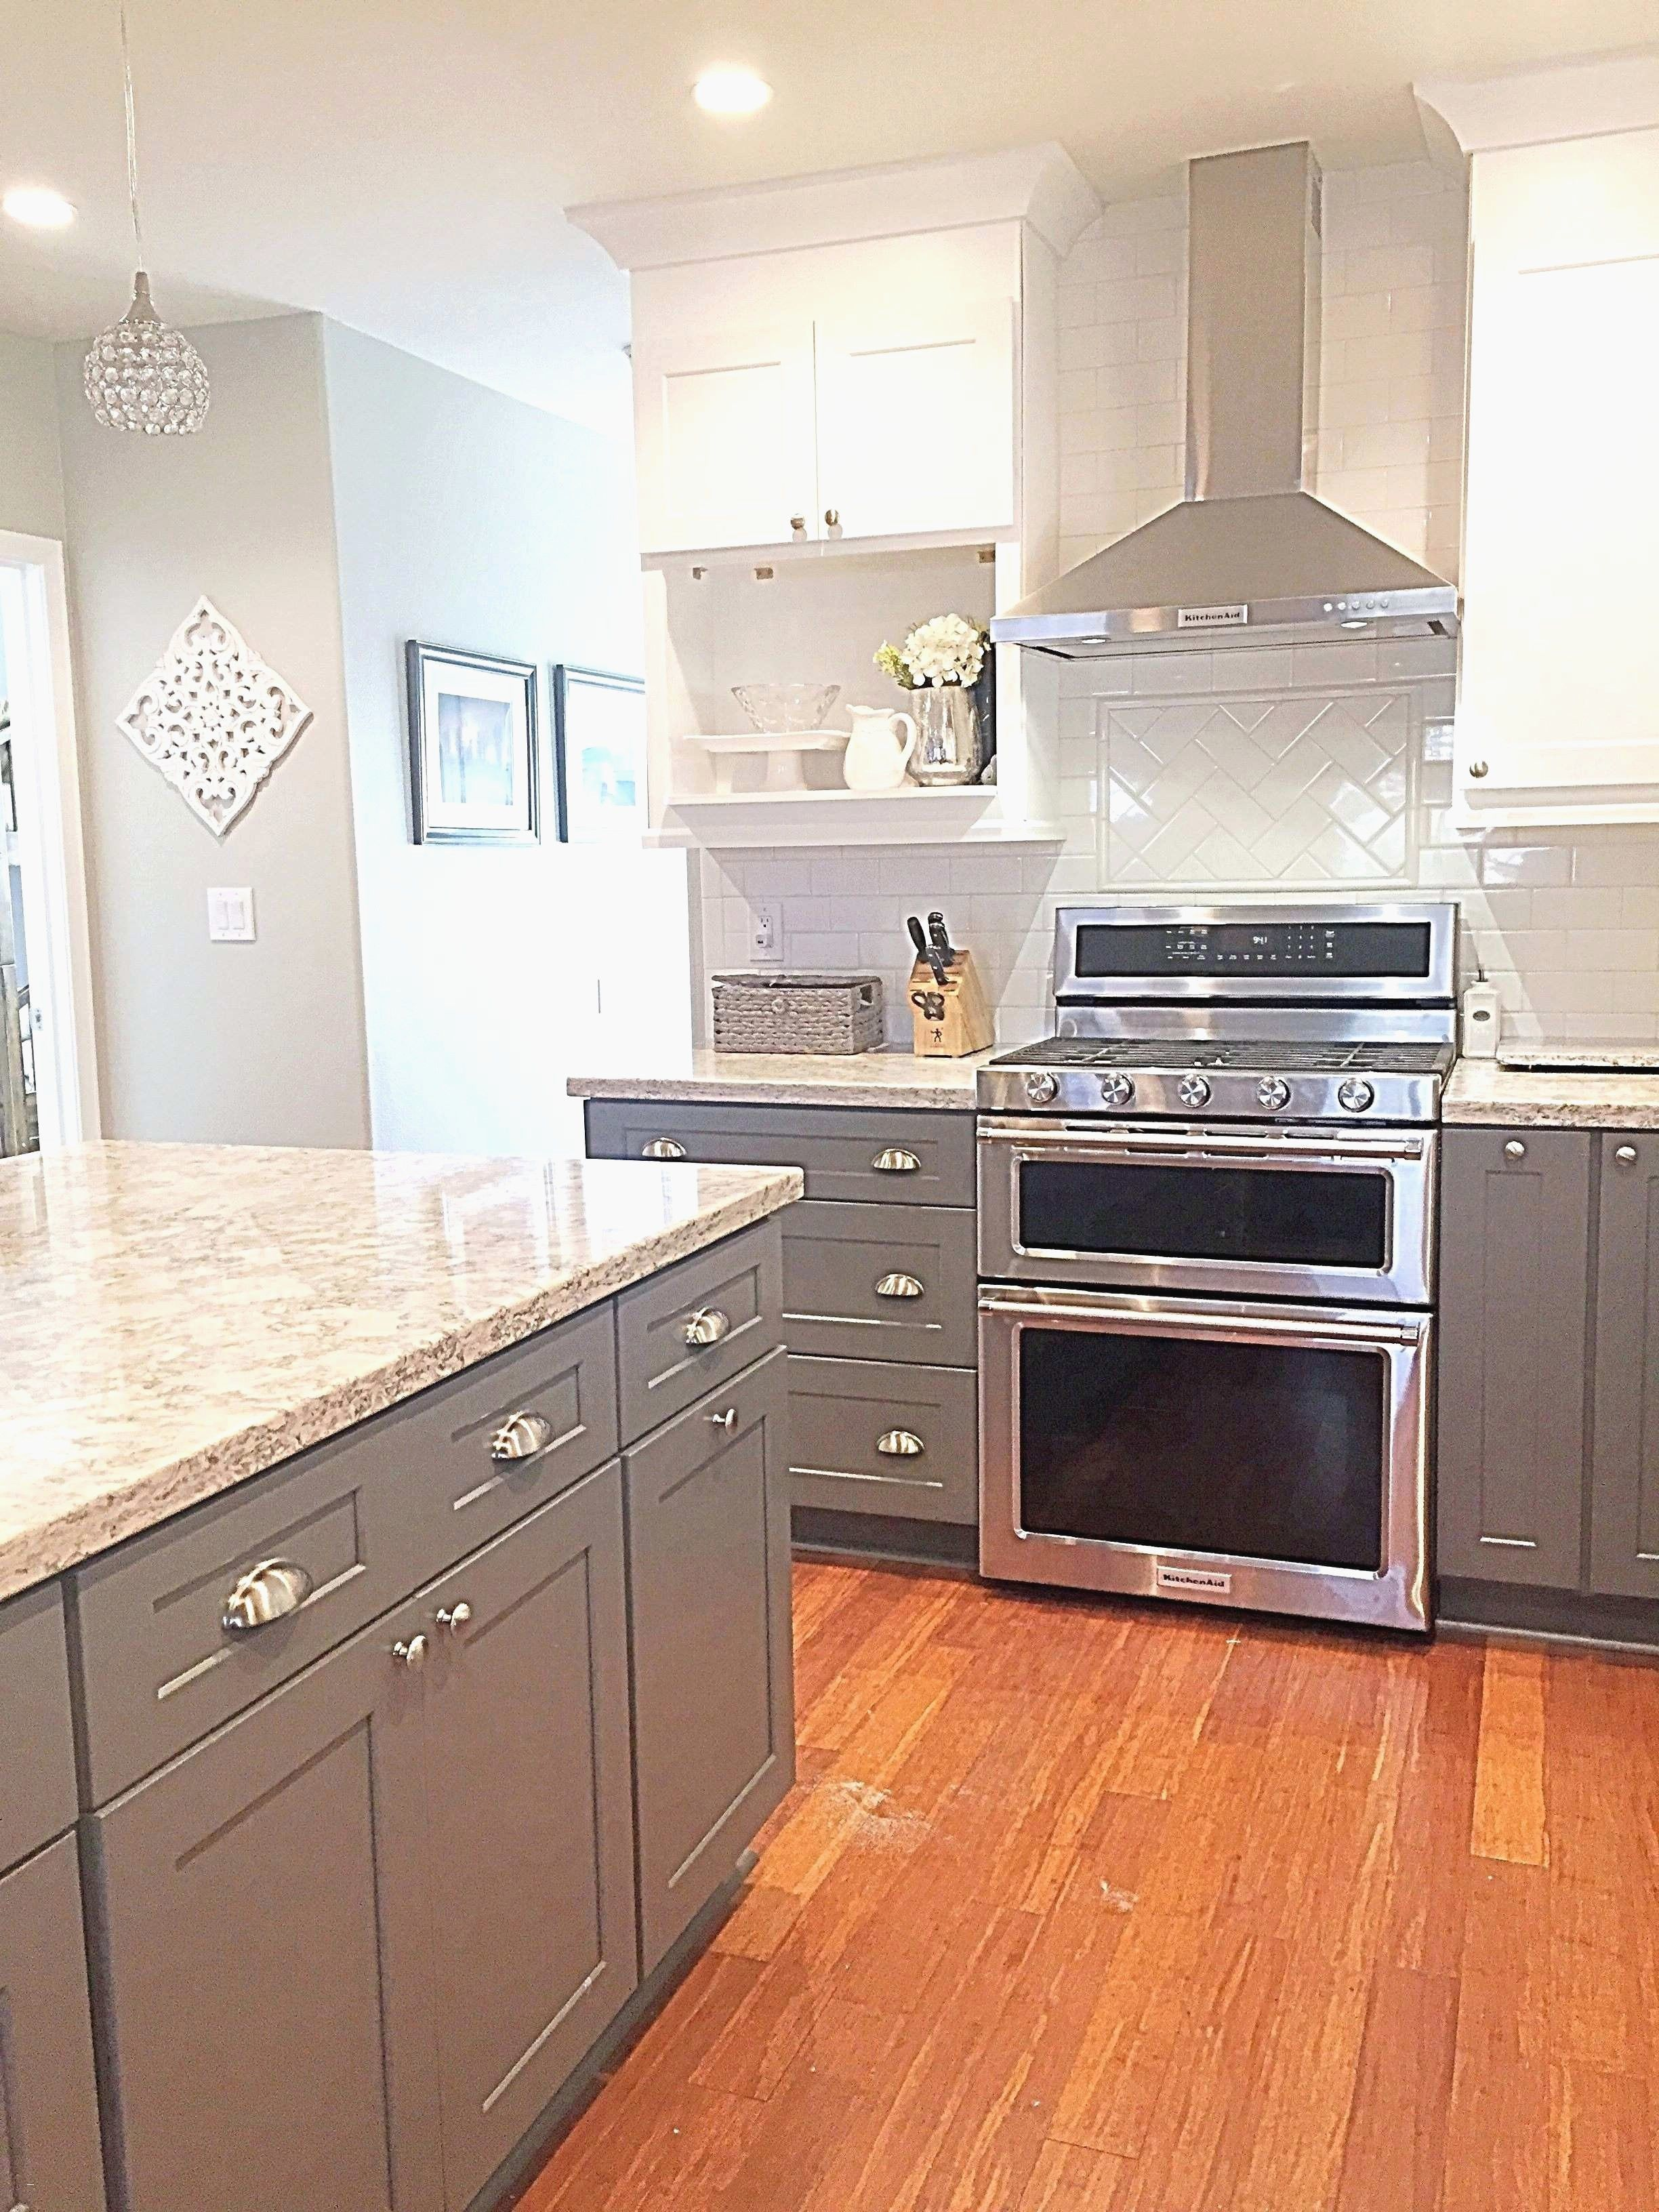 Luxury Amish Kitchen Cabinets The Most Awesome In Addition To Beautiful Amish Kitchen Ca Kitchen Cabinet Design Kitchen Cabinet Trends Kitchen Cabinets Decor